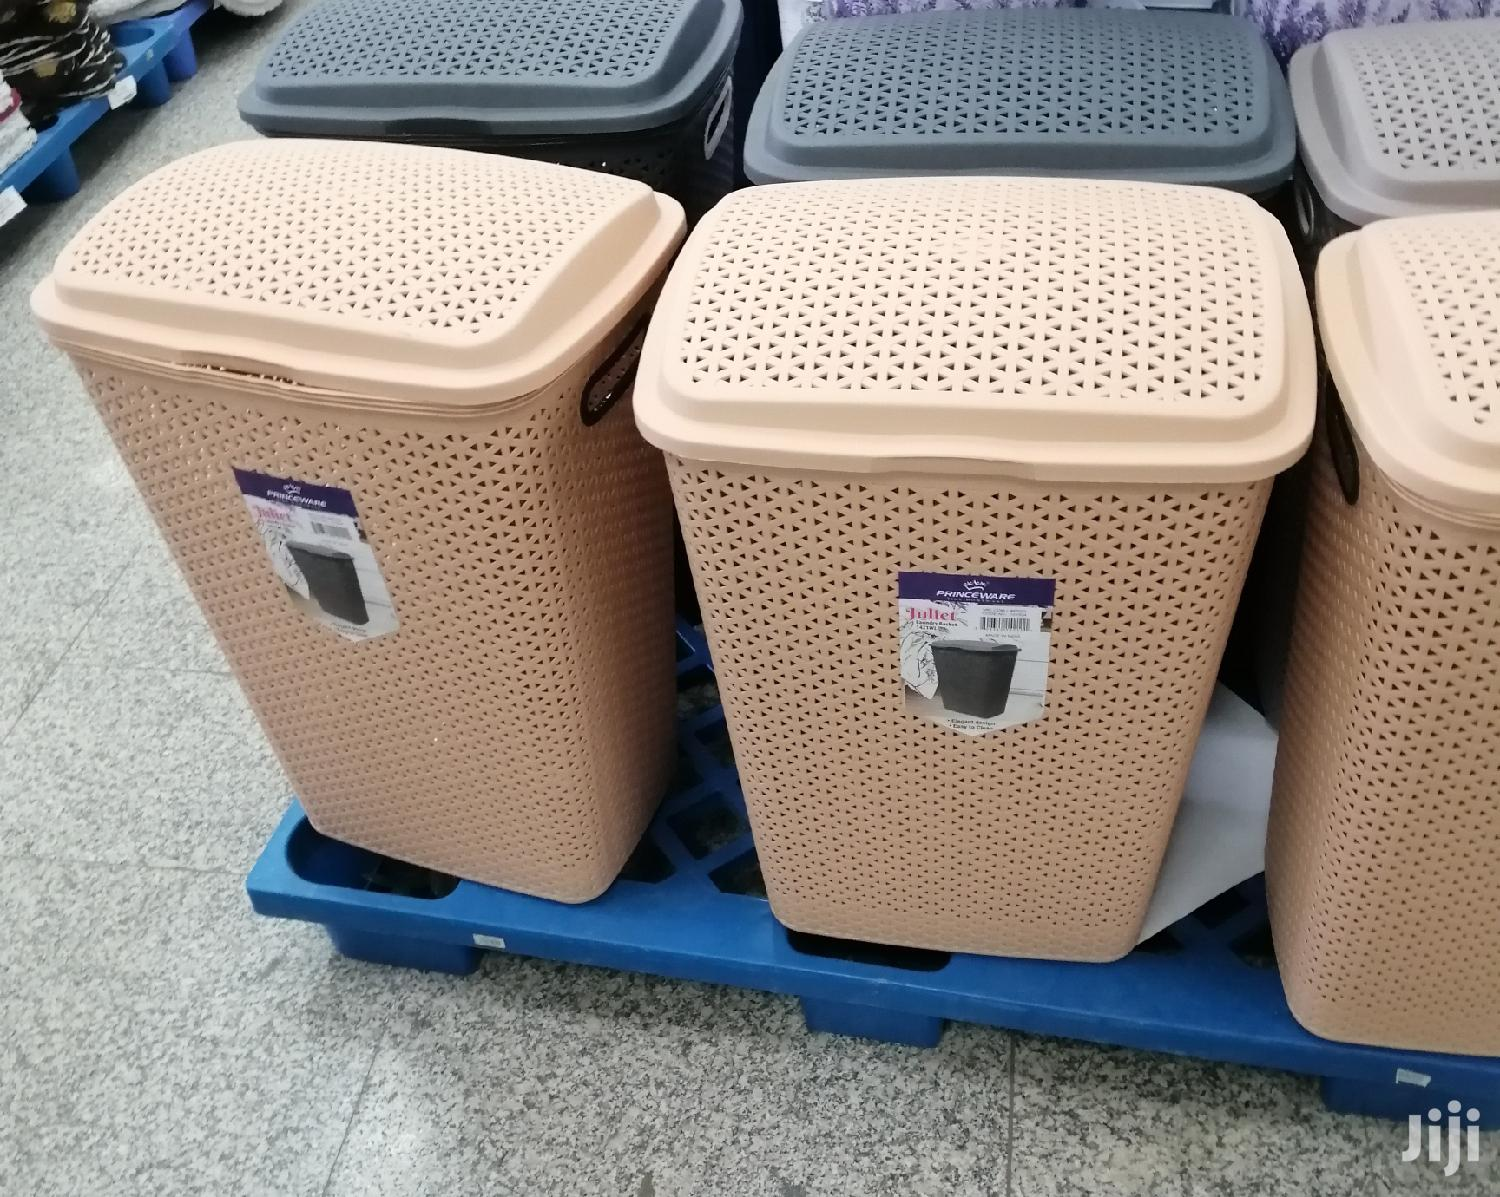 Laundry Baskets | Home Accessories for sale in Achimota, Greater Accra, Ghana